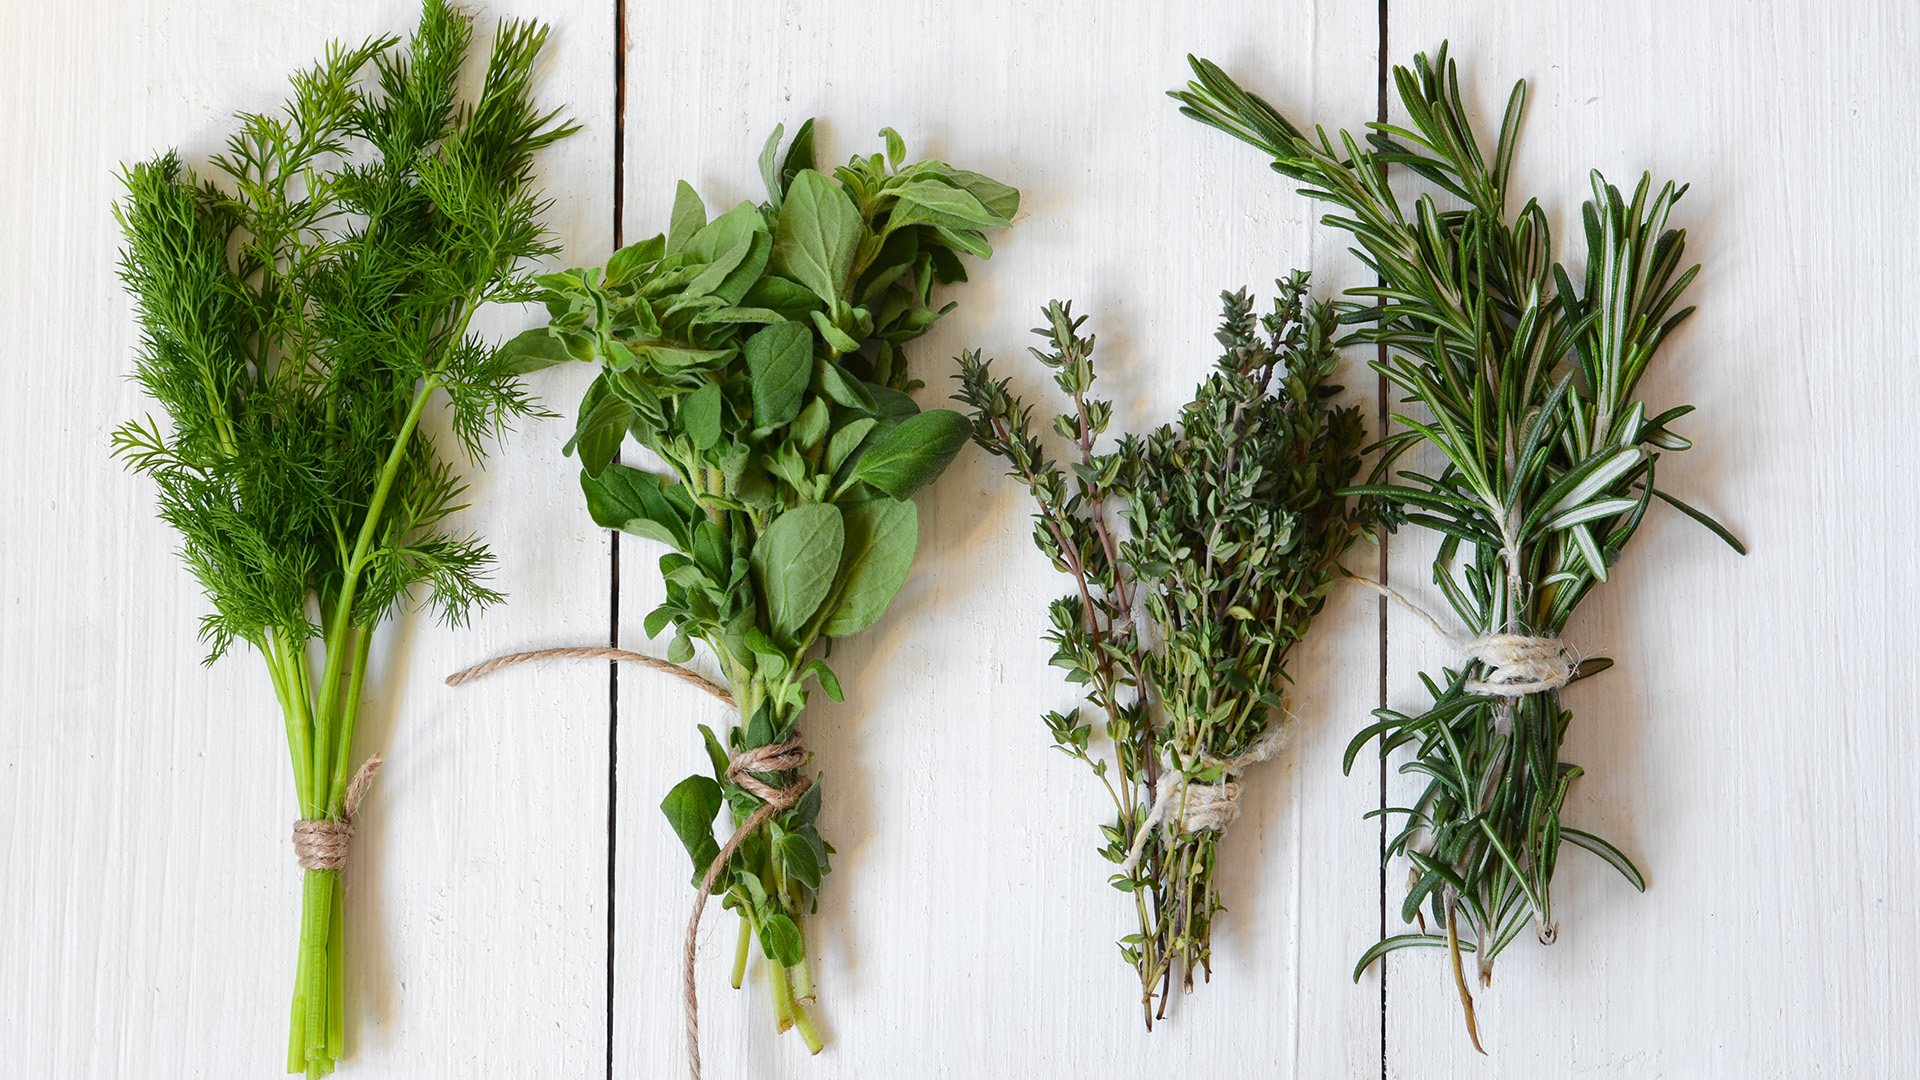 Herb Hacks To Make Your Garden Full And